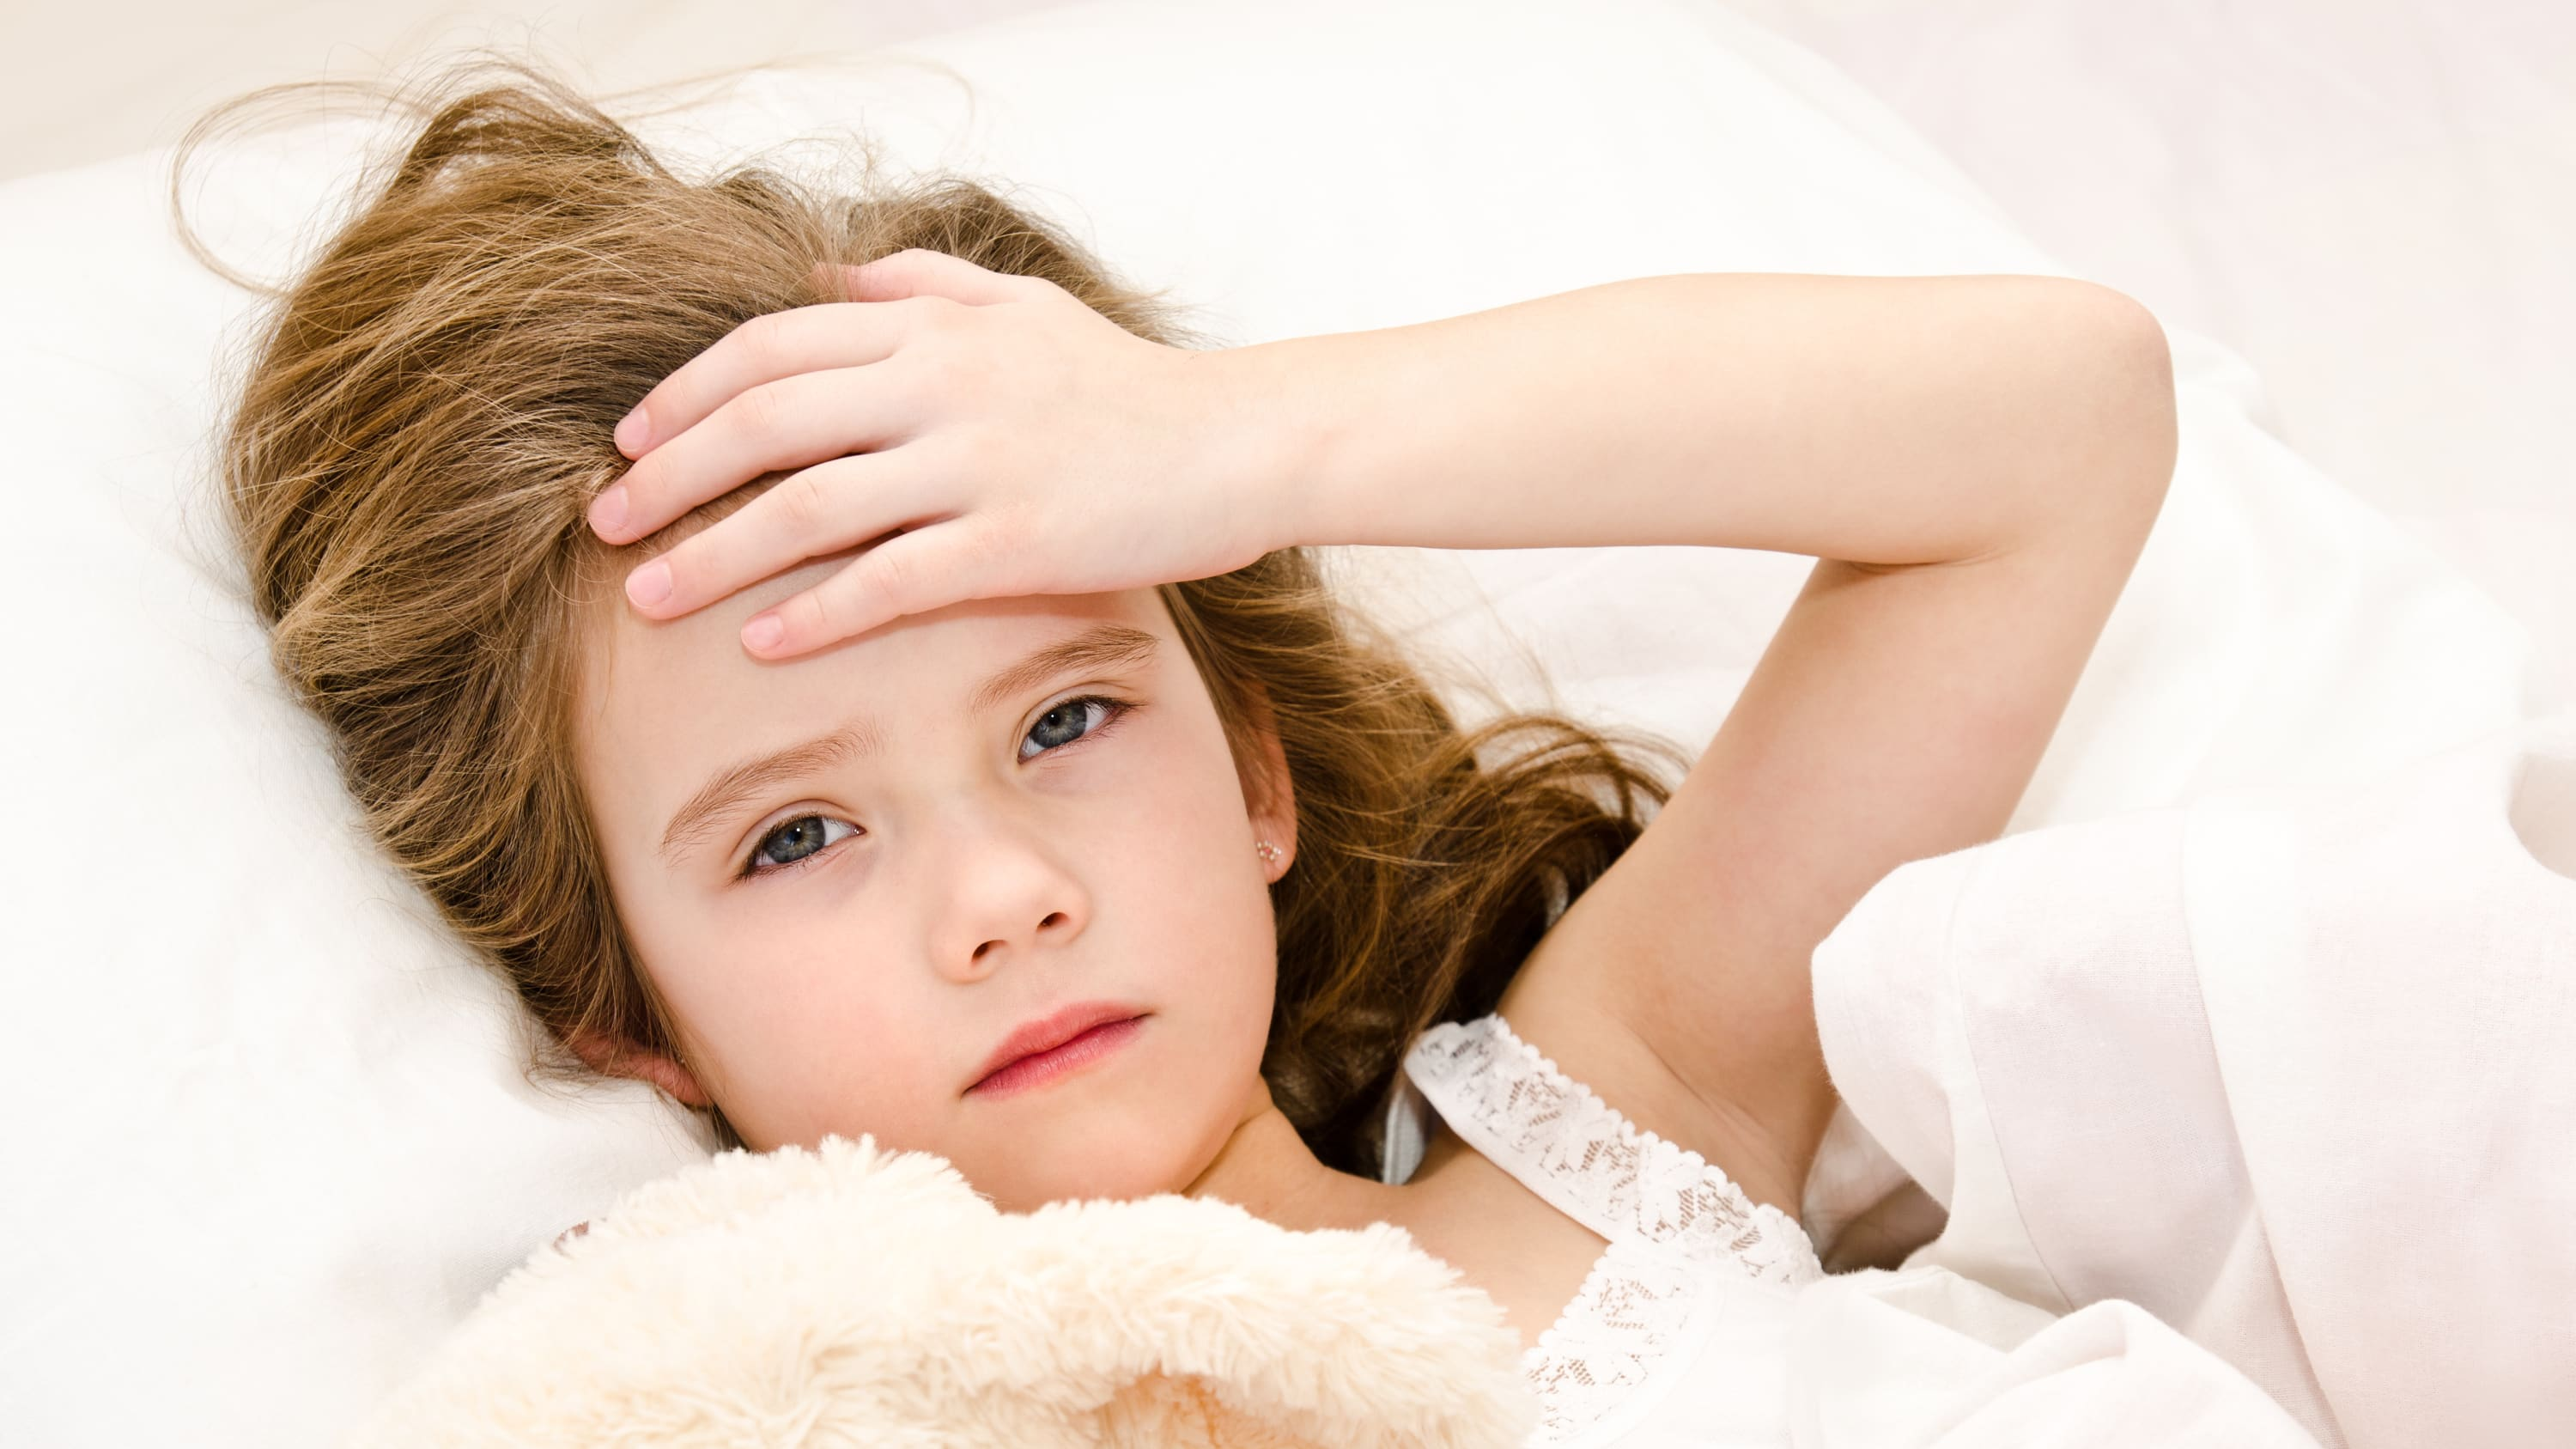 child feeling unwell, perhaps after undergoing chemotherapy